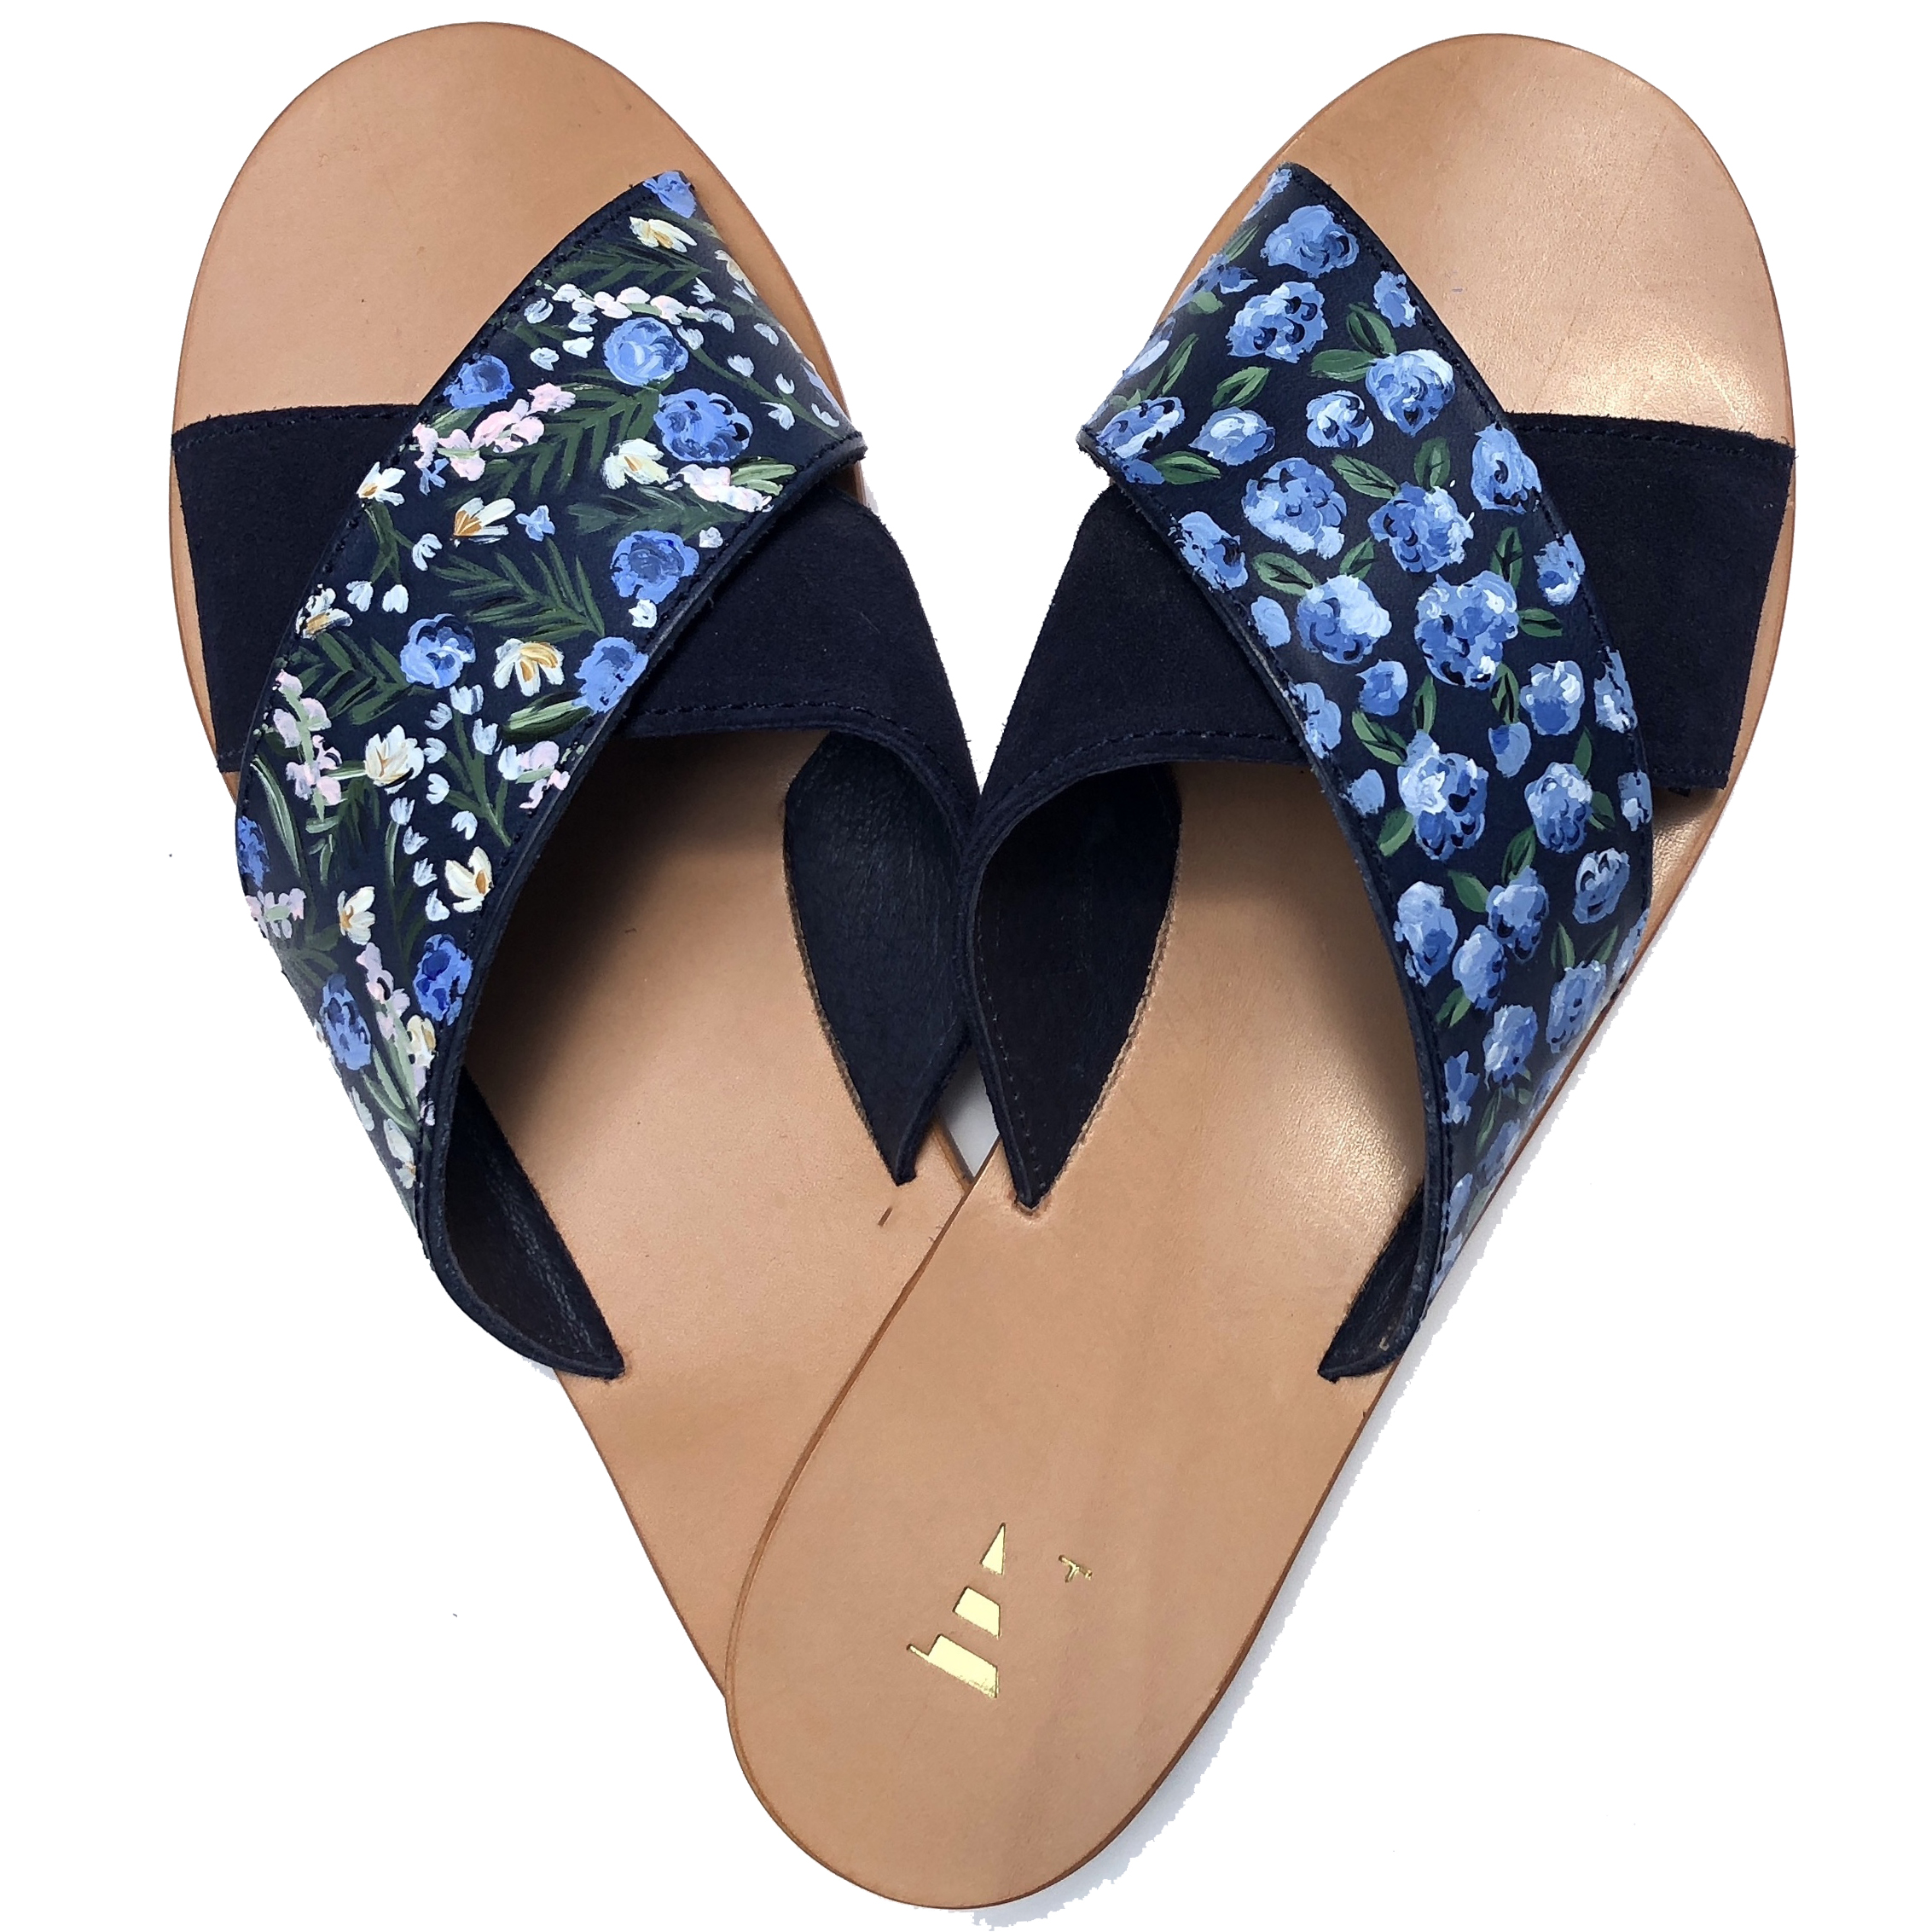 For Nantucket Sole